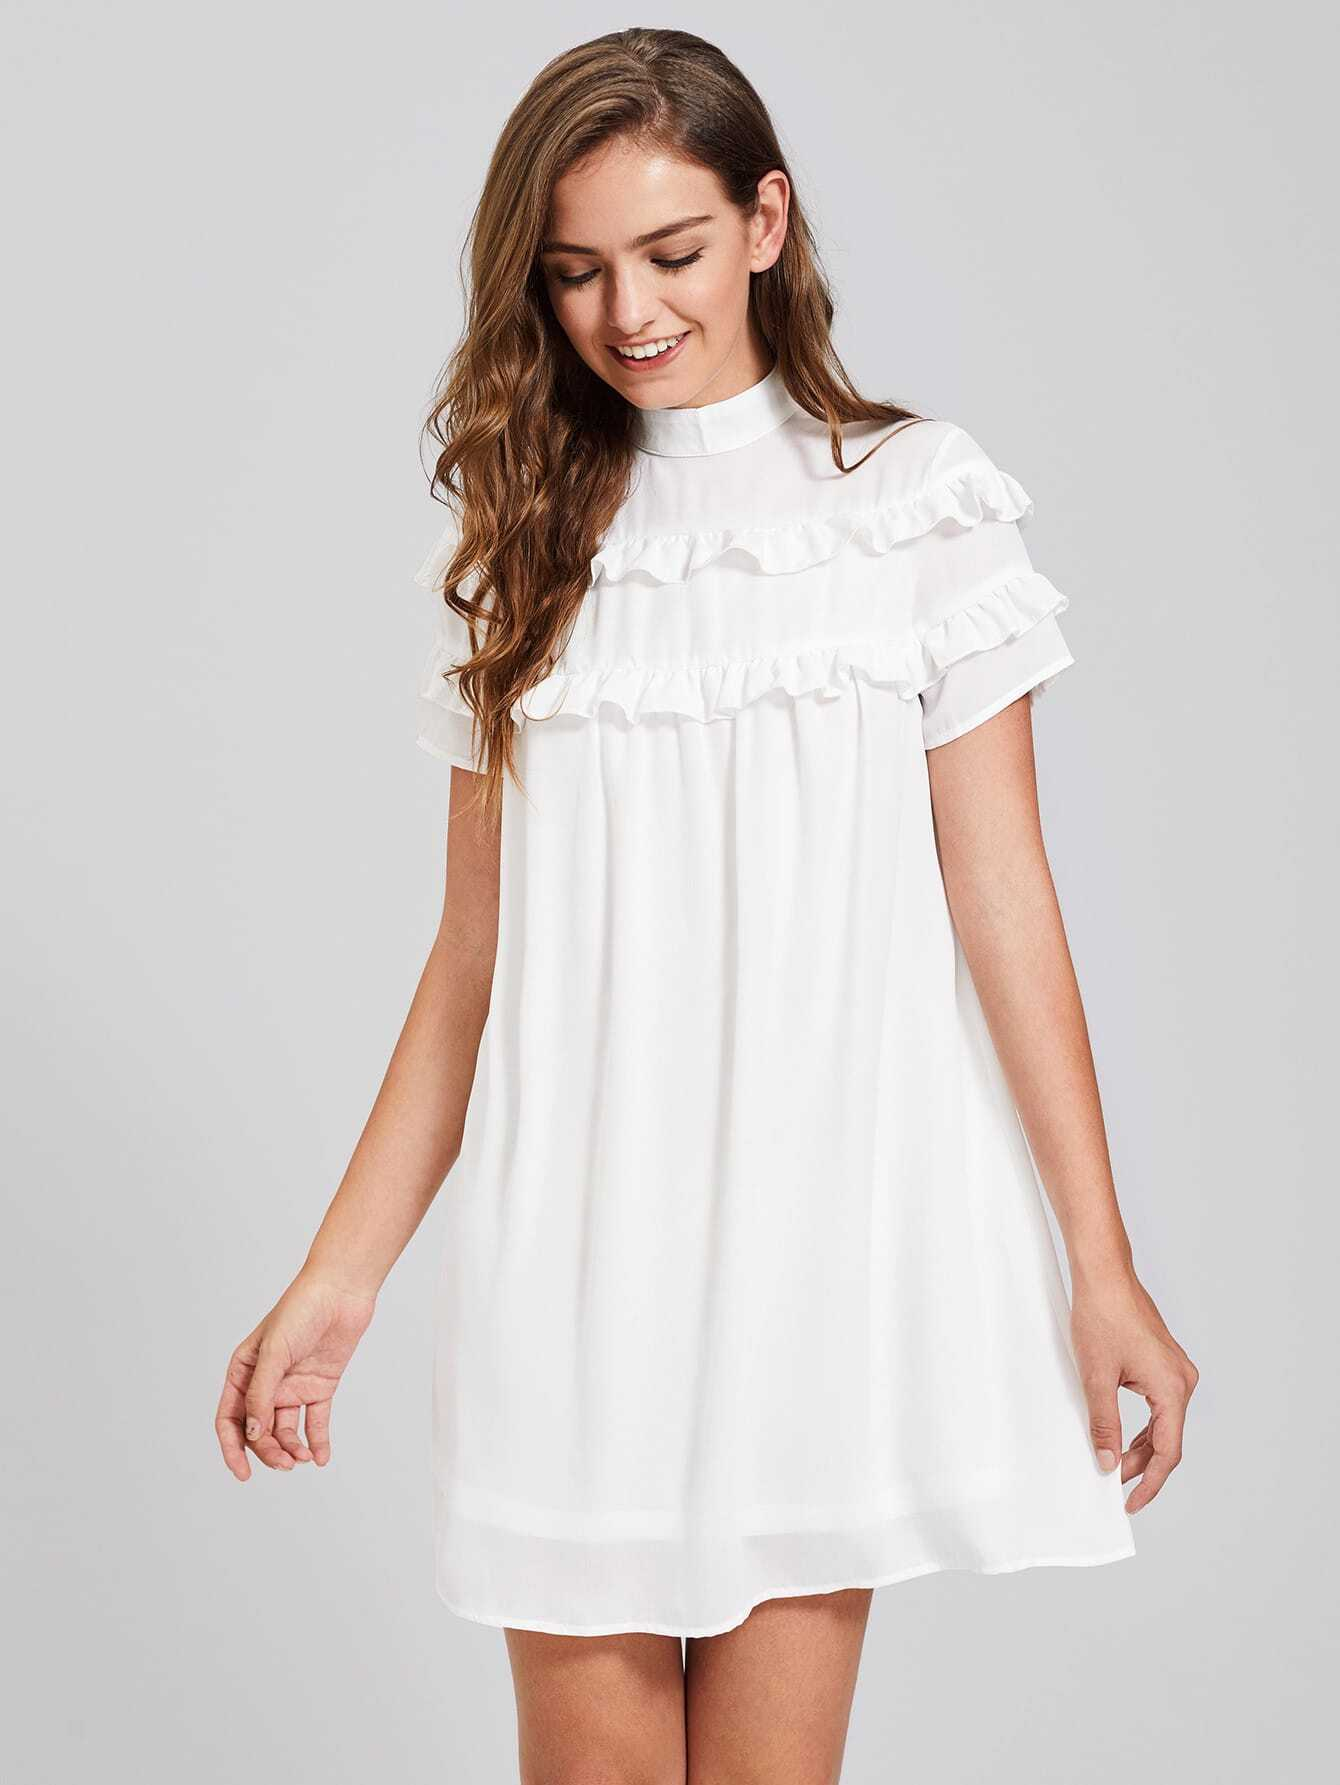 Band Collar Frill Detail Dress frill layered pearl detail sweatshirt dress